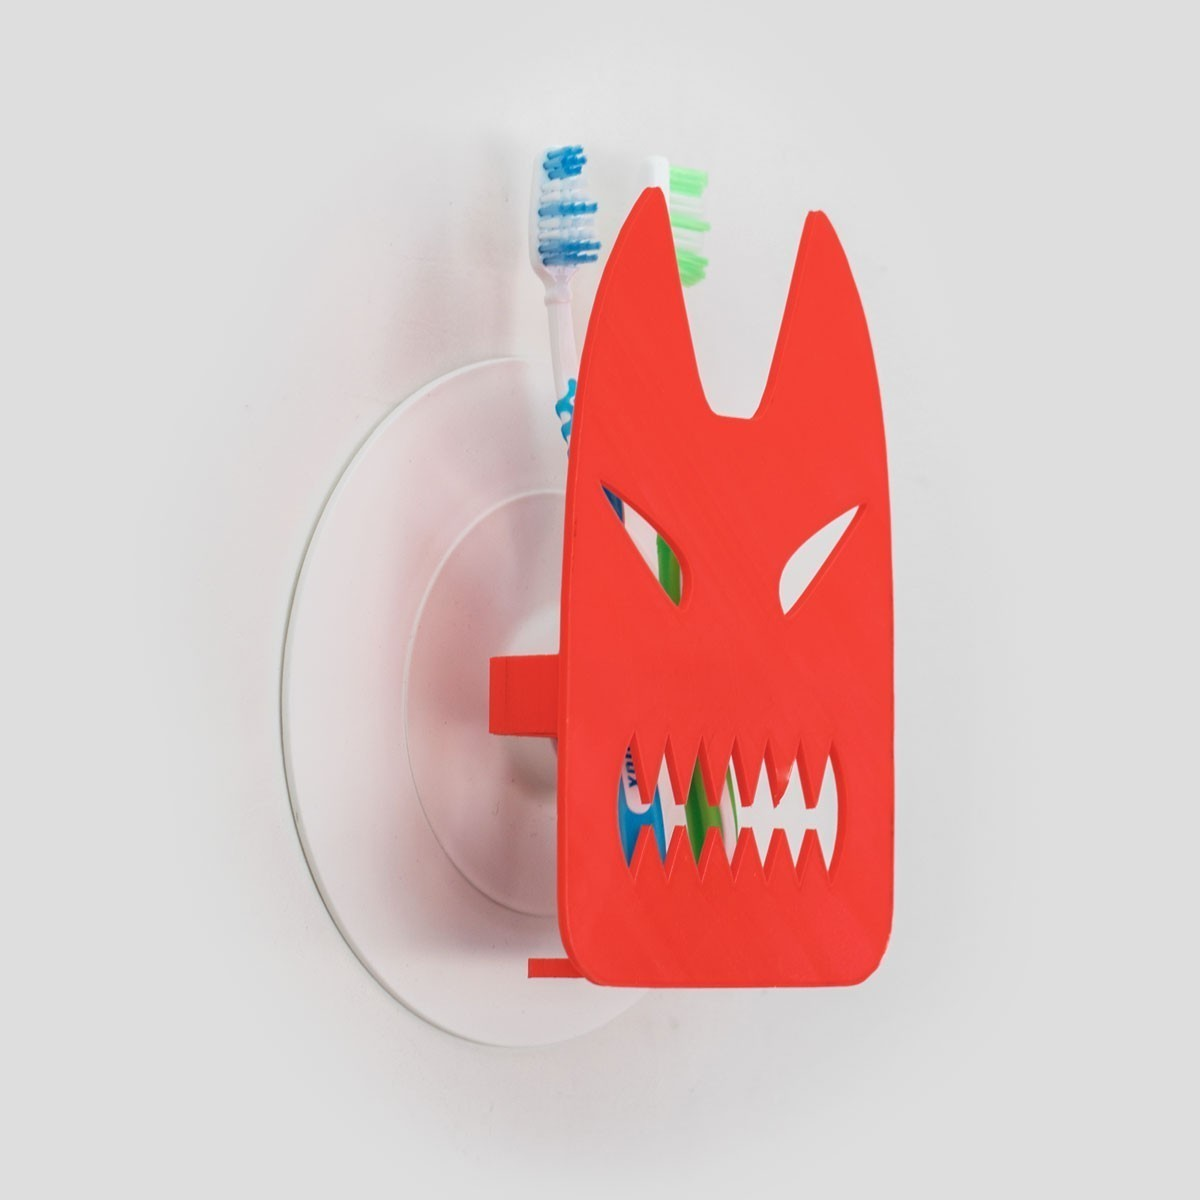 toothy_04.jpg Download free STL file Toothy - Toothbrush Holder • 3D printable design, EUMAKERS